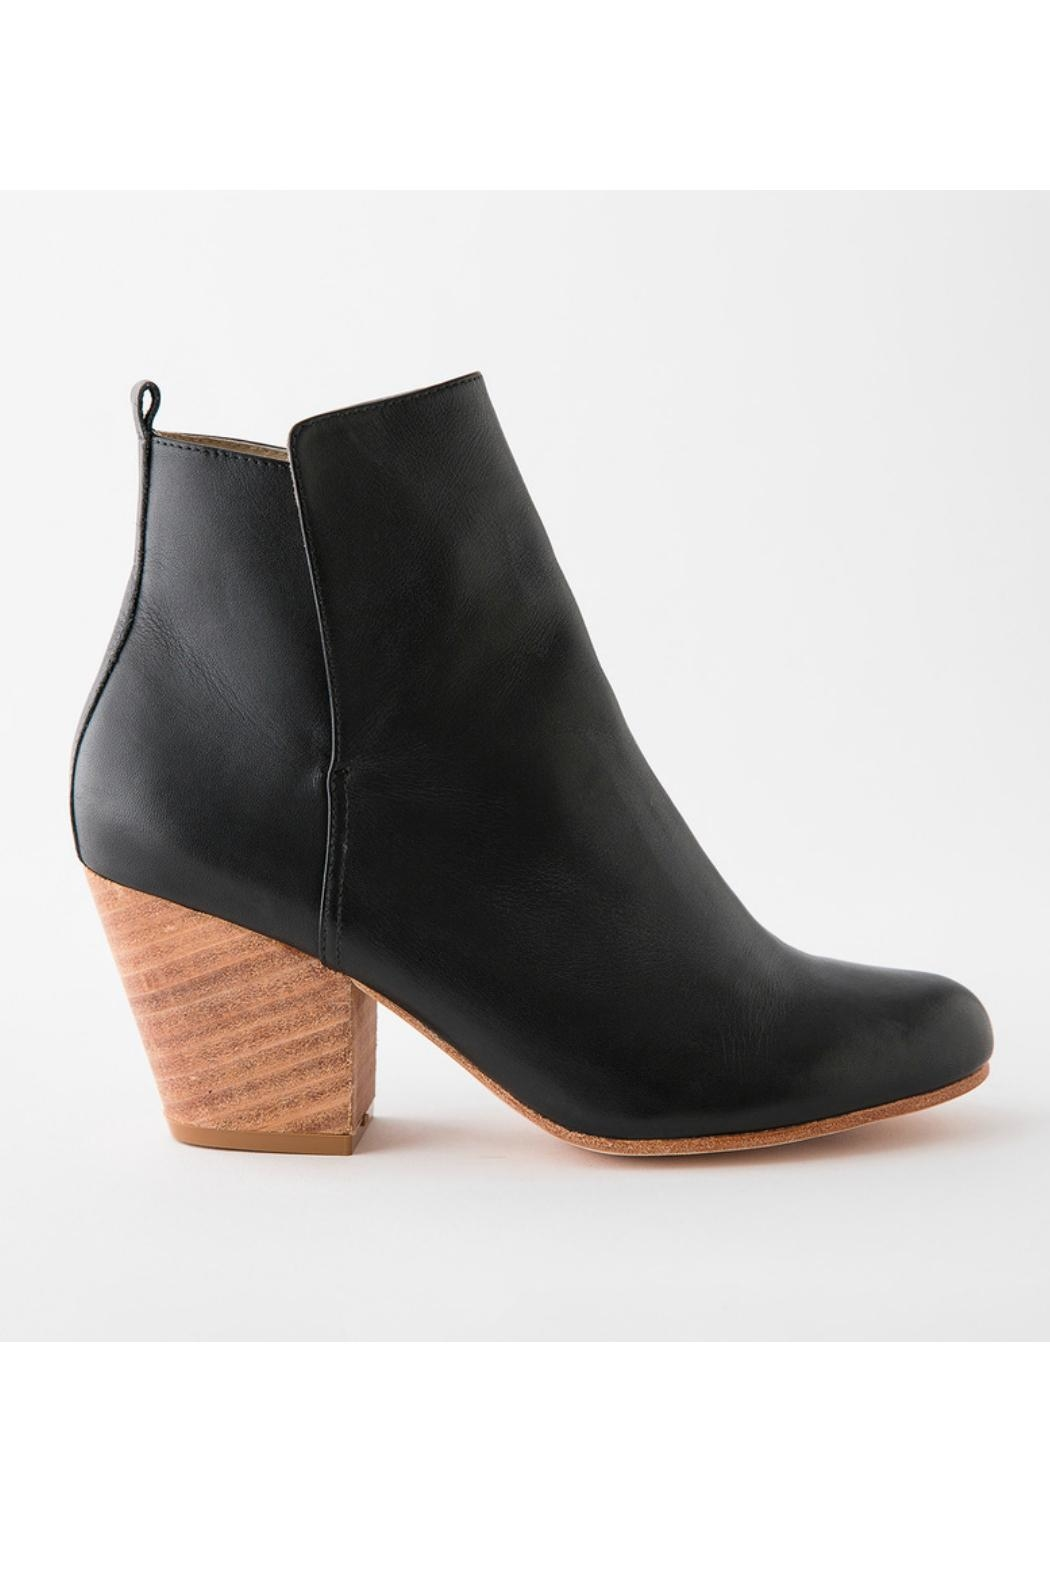 Fortress of Inca Black Leather Bootie - Front Full Image